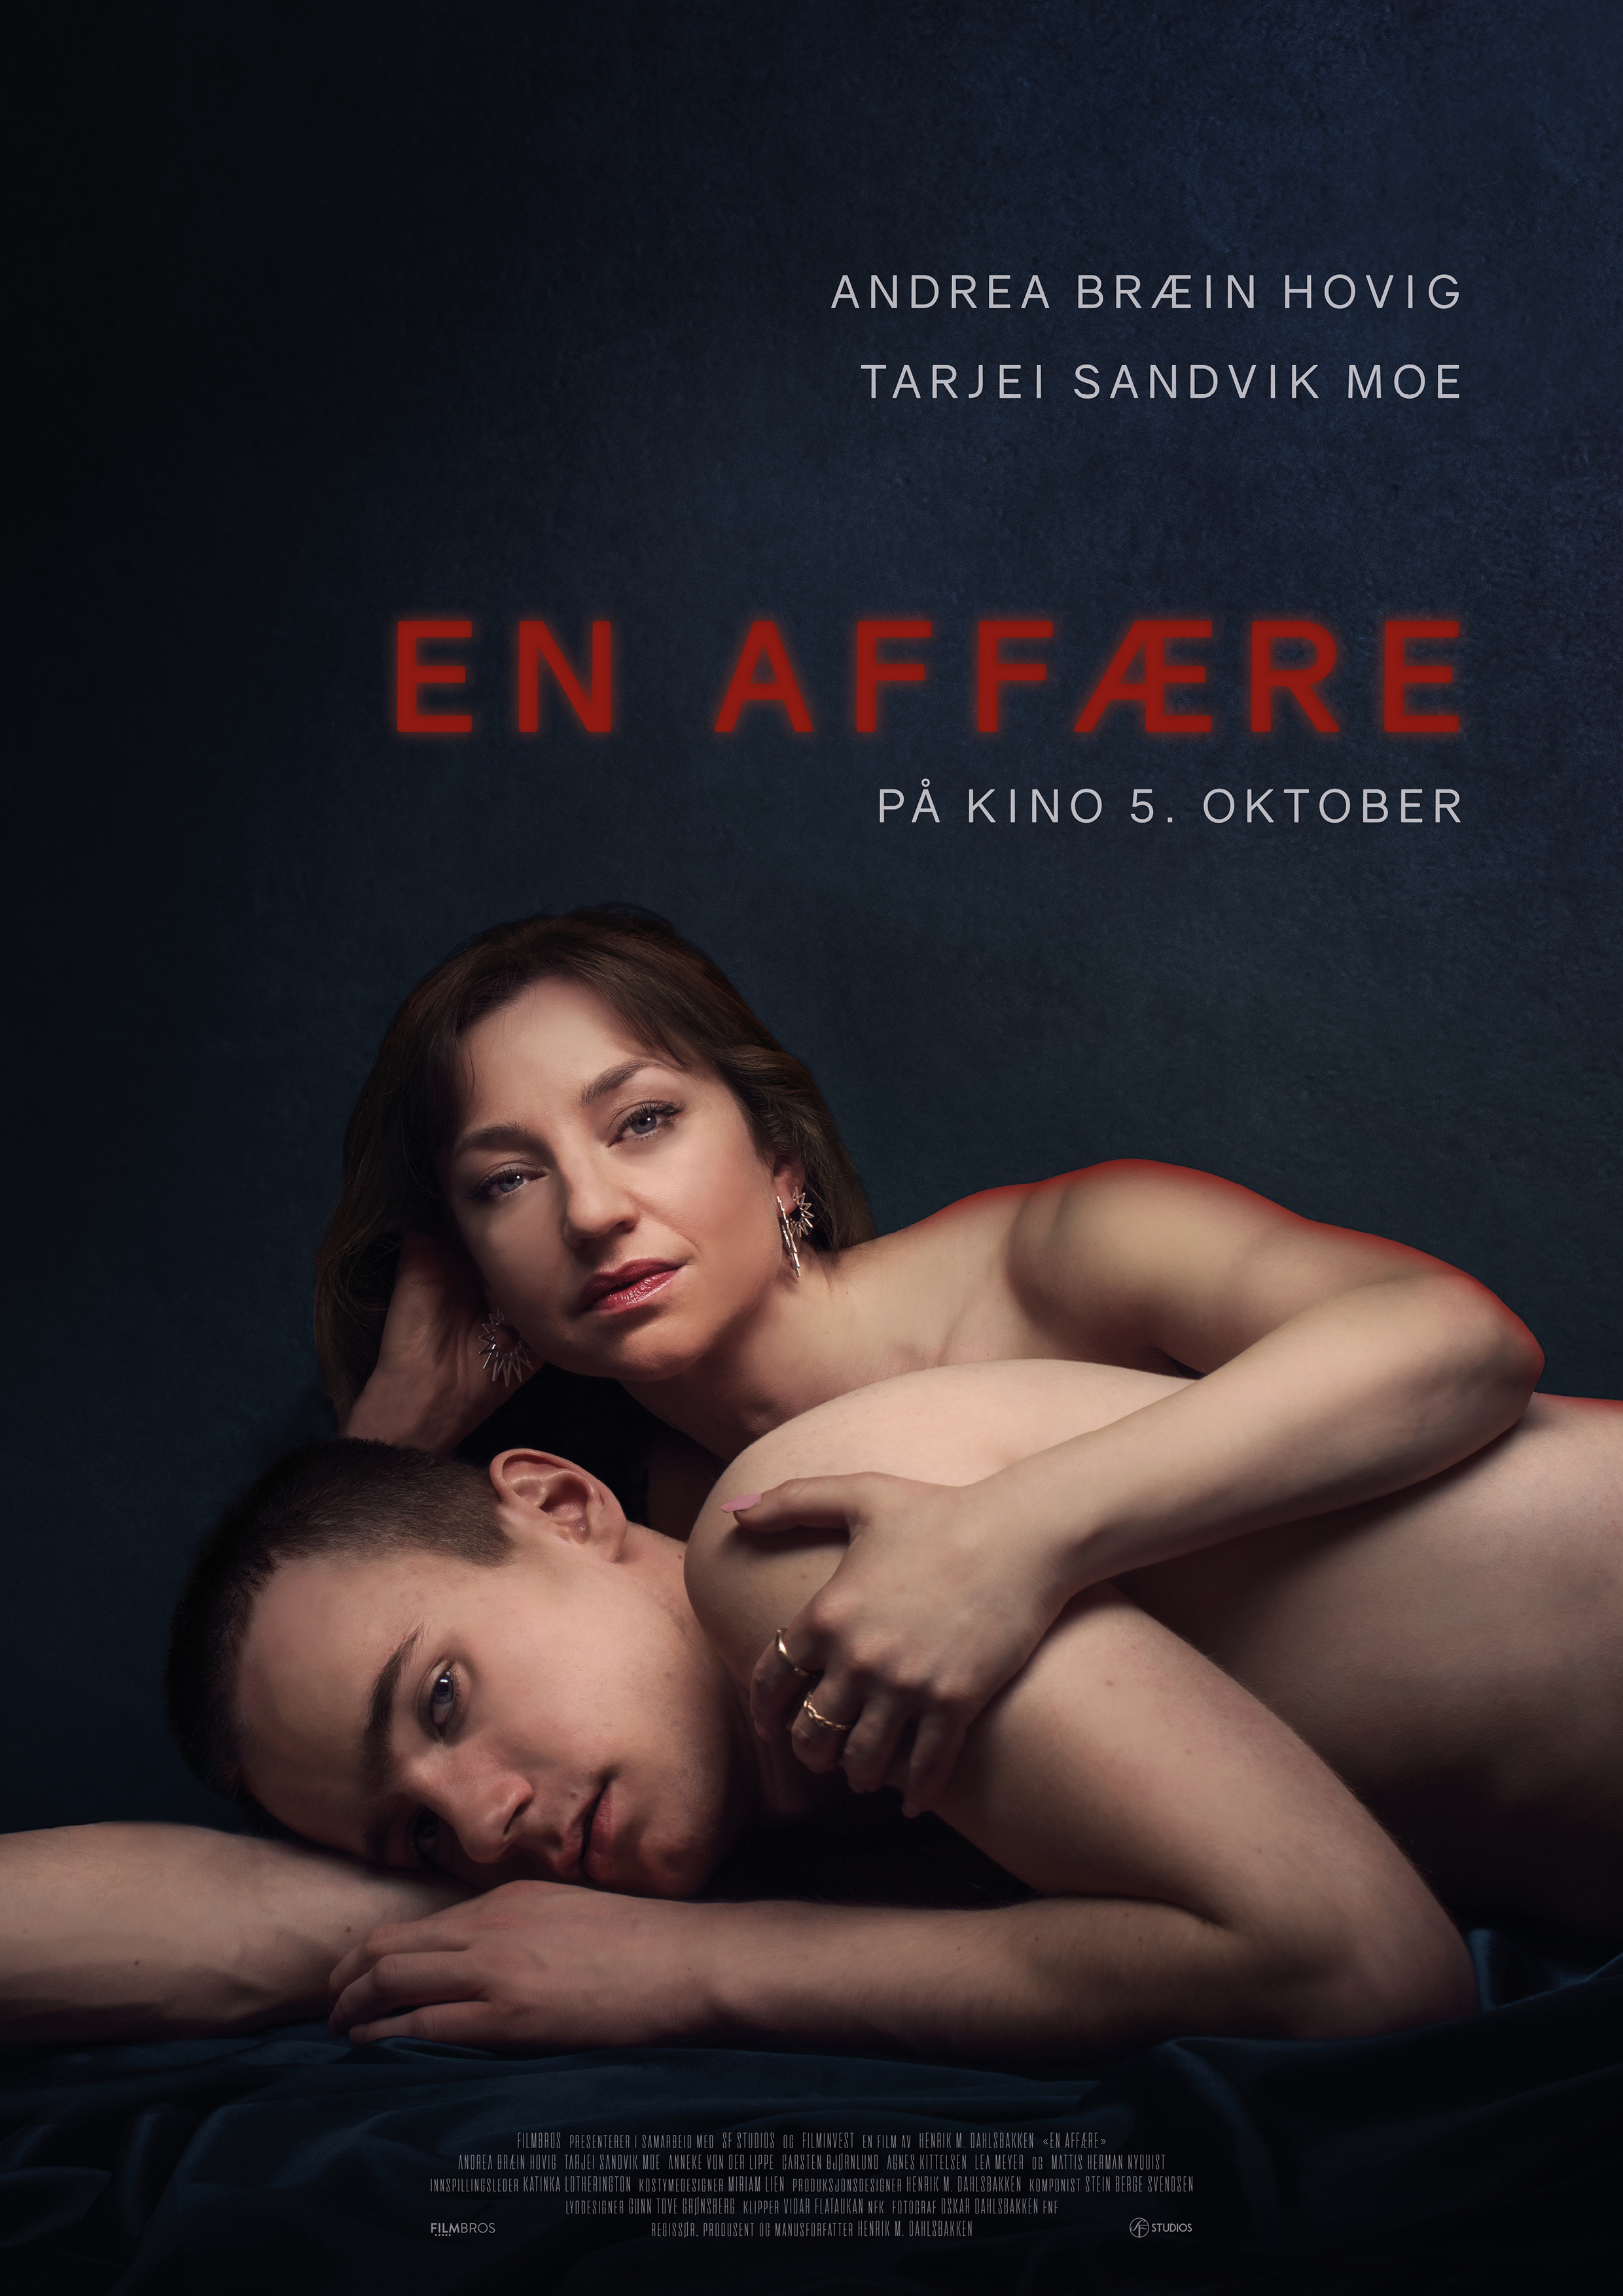 Movies french erotic com putlocker teen apologise, but this